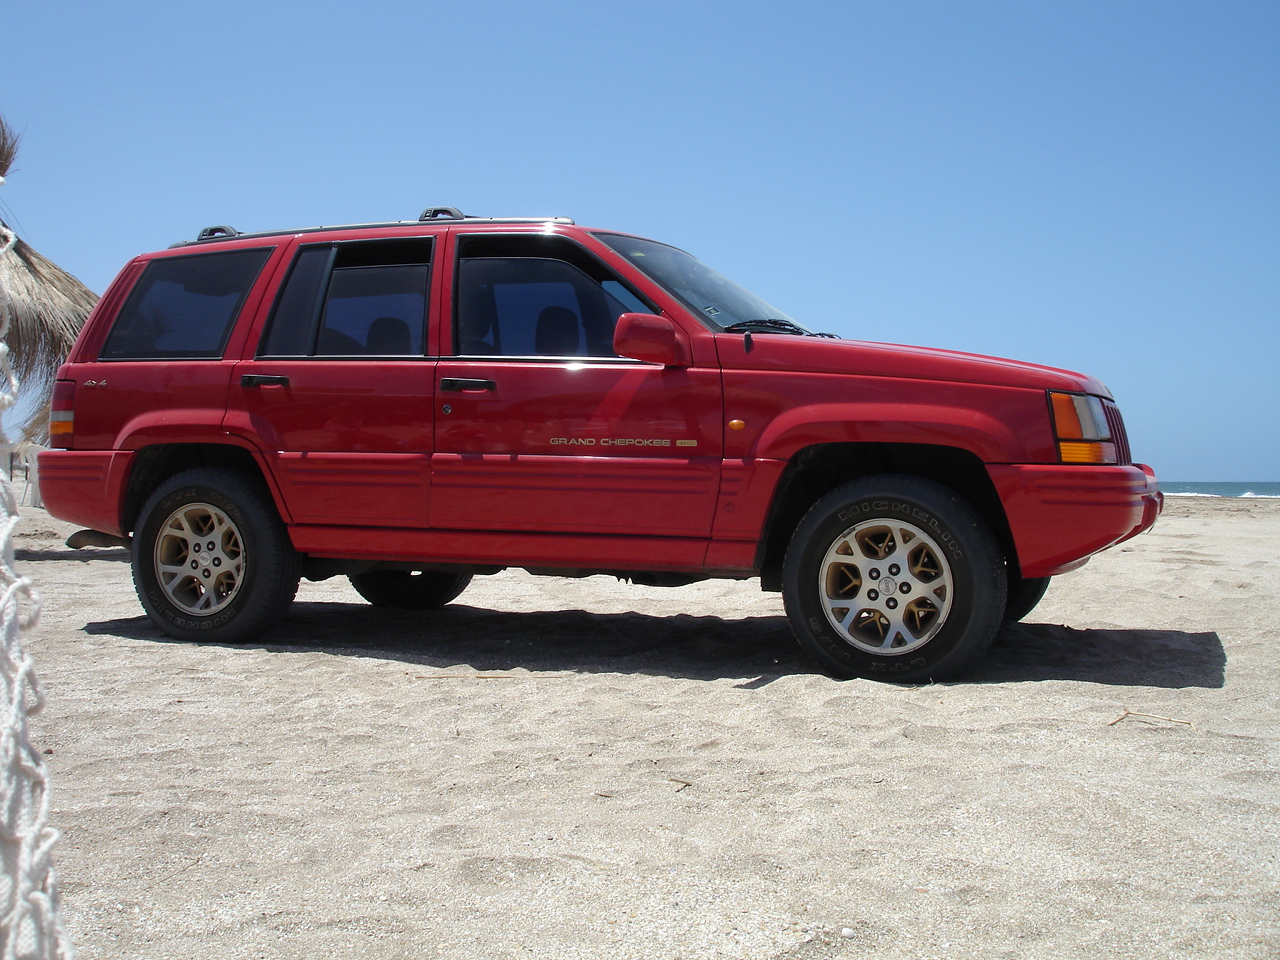 xjhd the bare f jcr product half cherokee front image xj view offroad doors full aluminum jeep